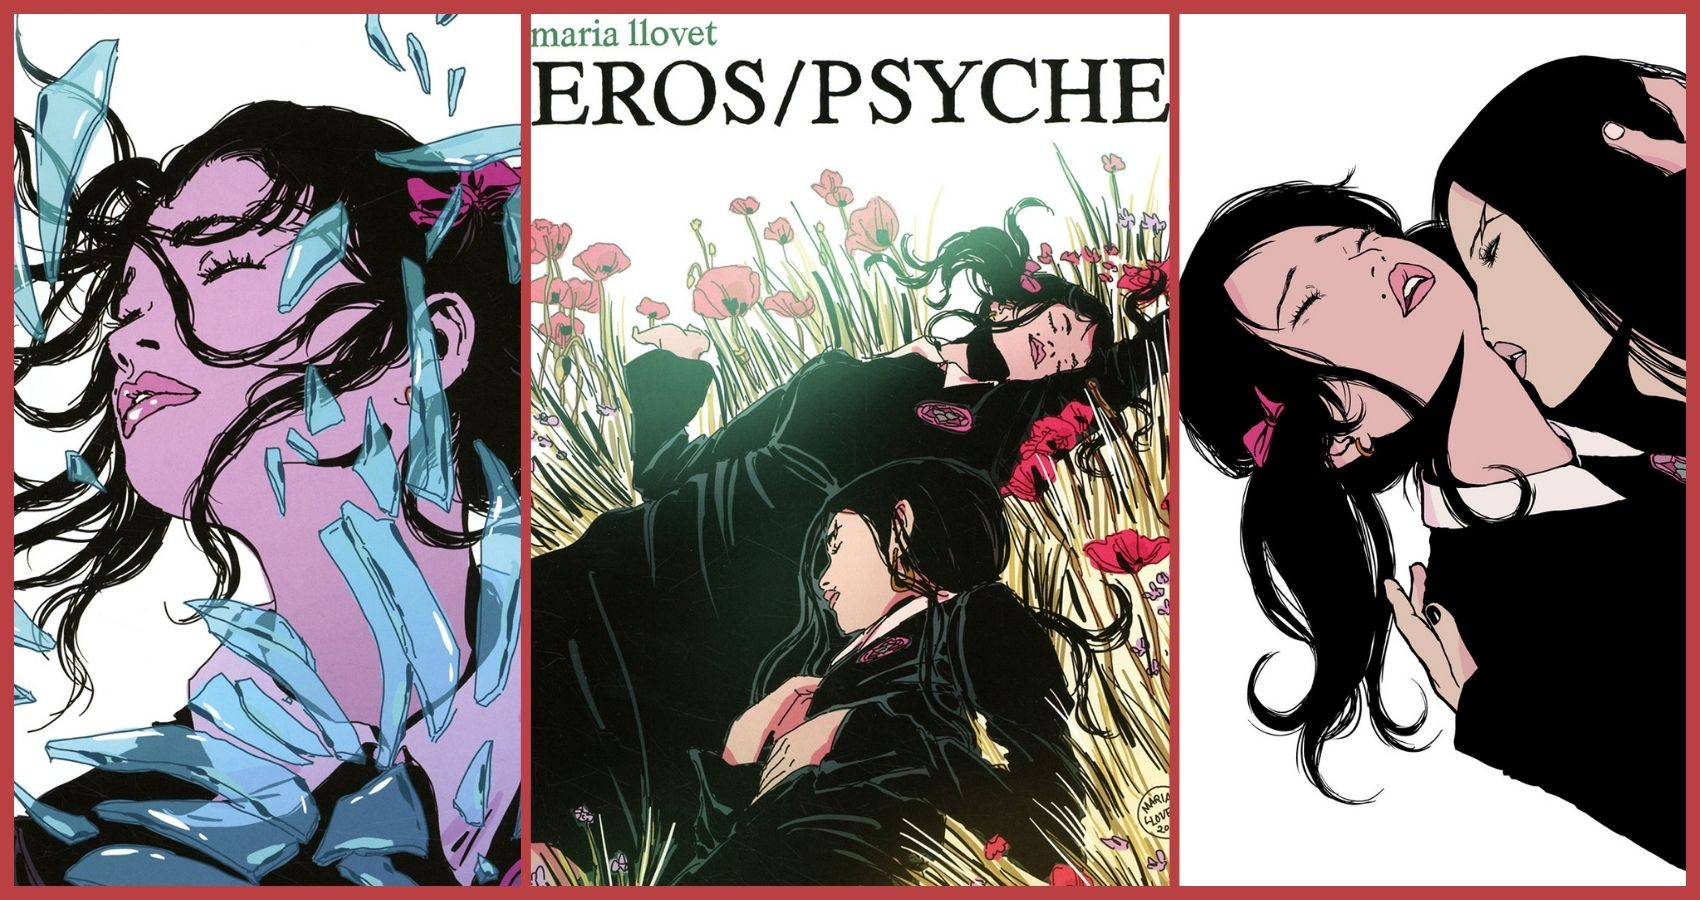 Eros/psyche review